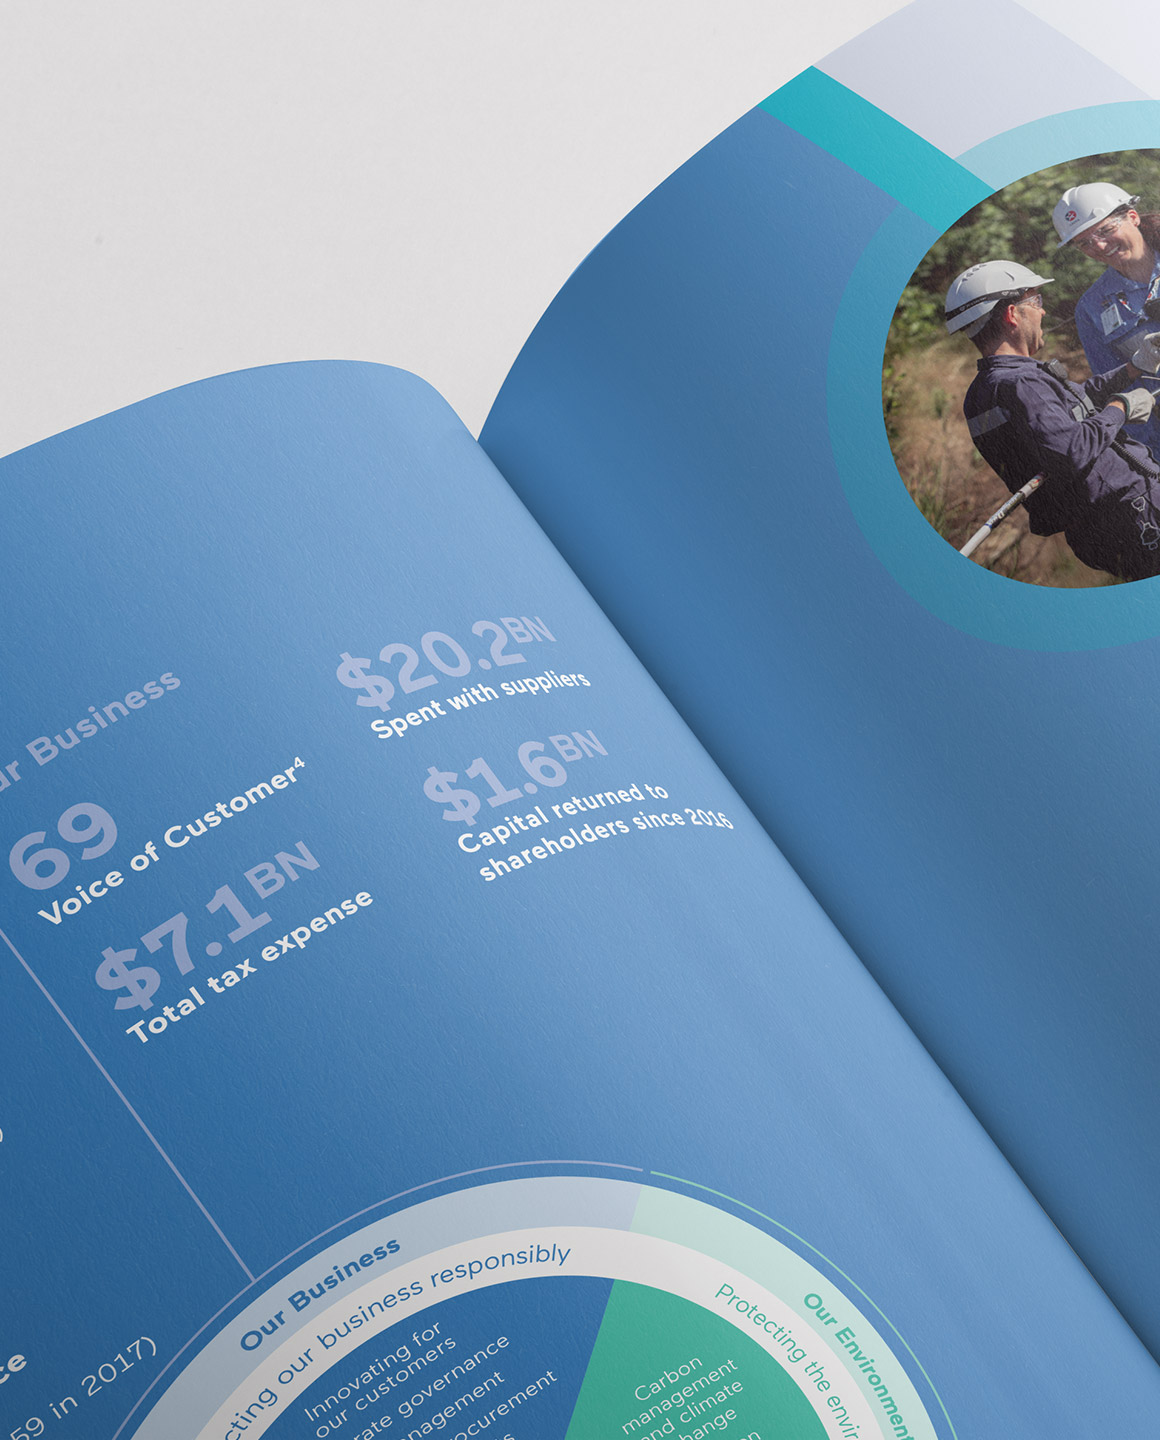 Caltex. Annual Report. Inside spread detail.